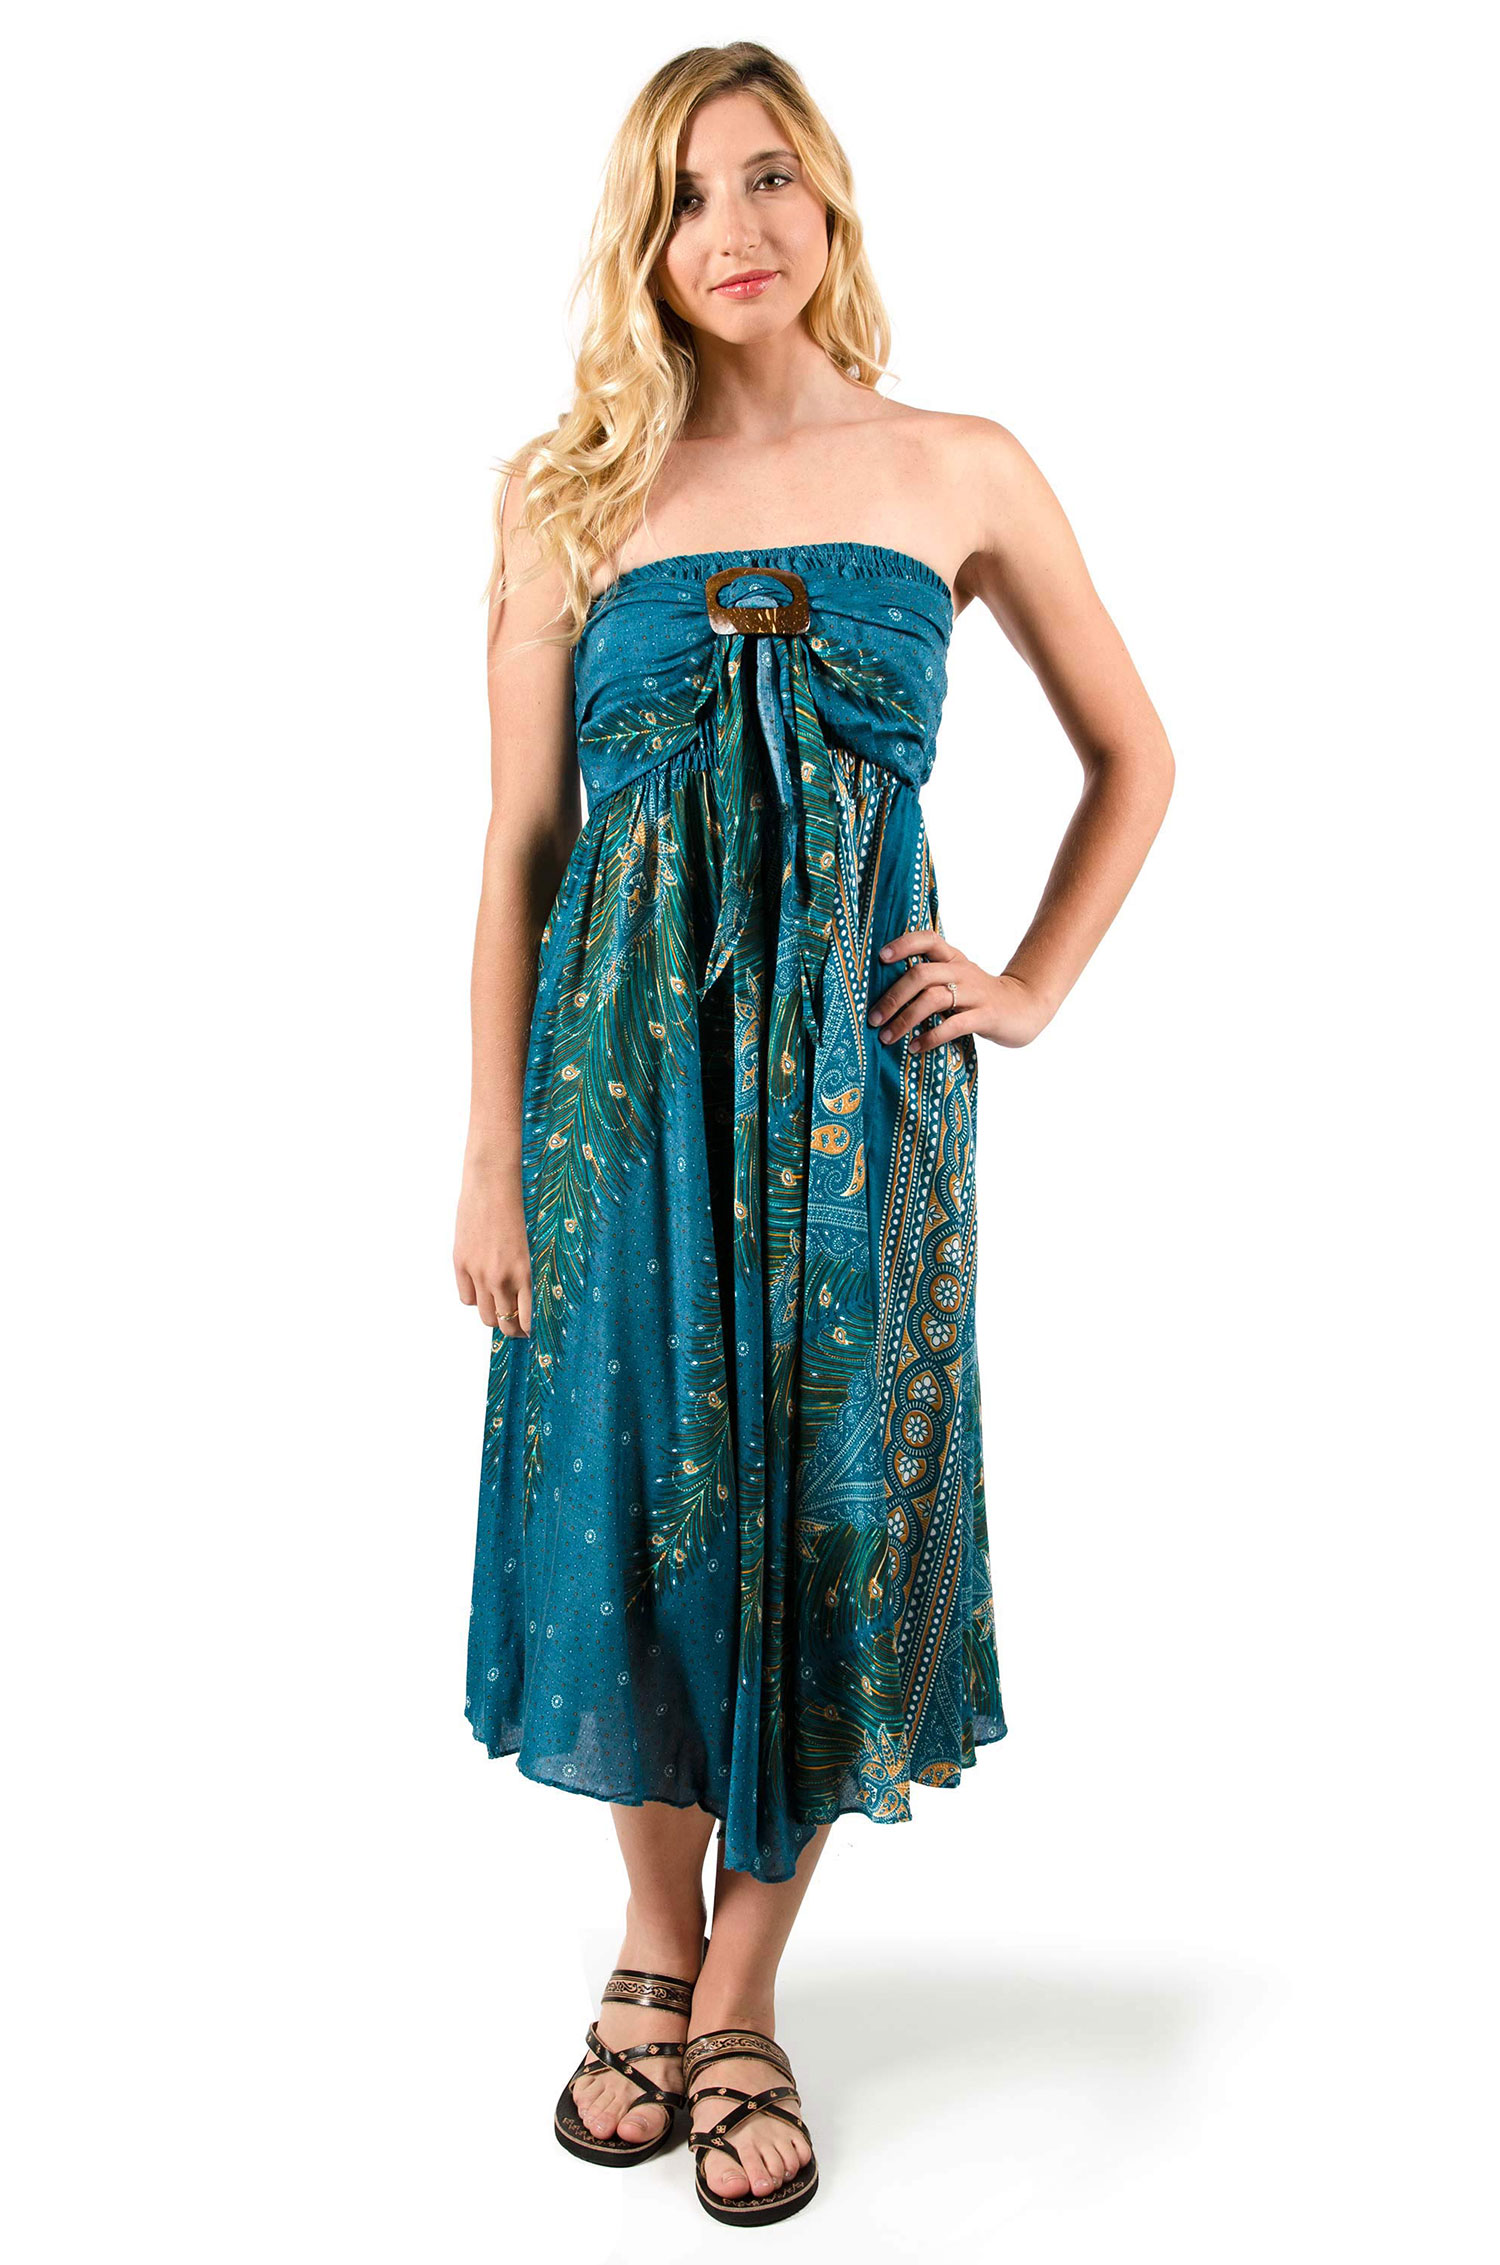 Peacock Print Rayon Dress / Skirt  Teal